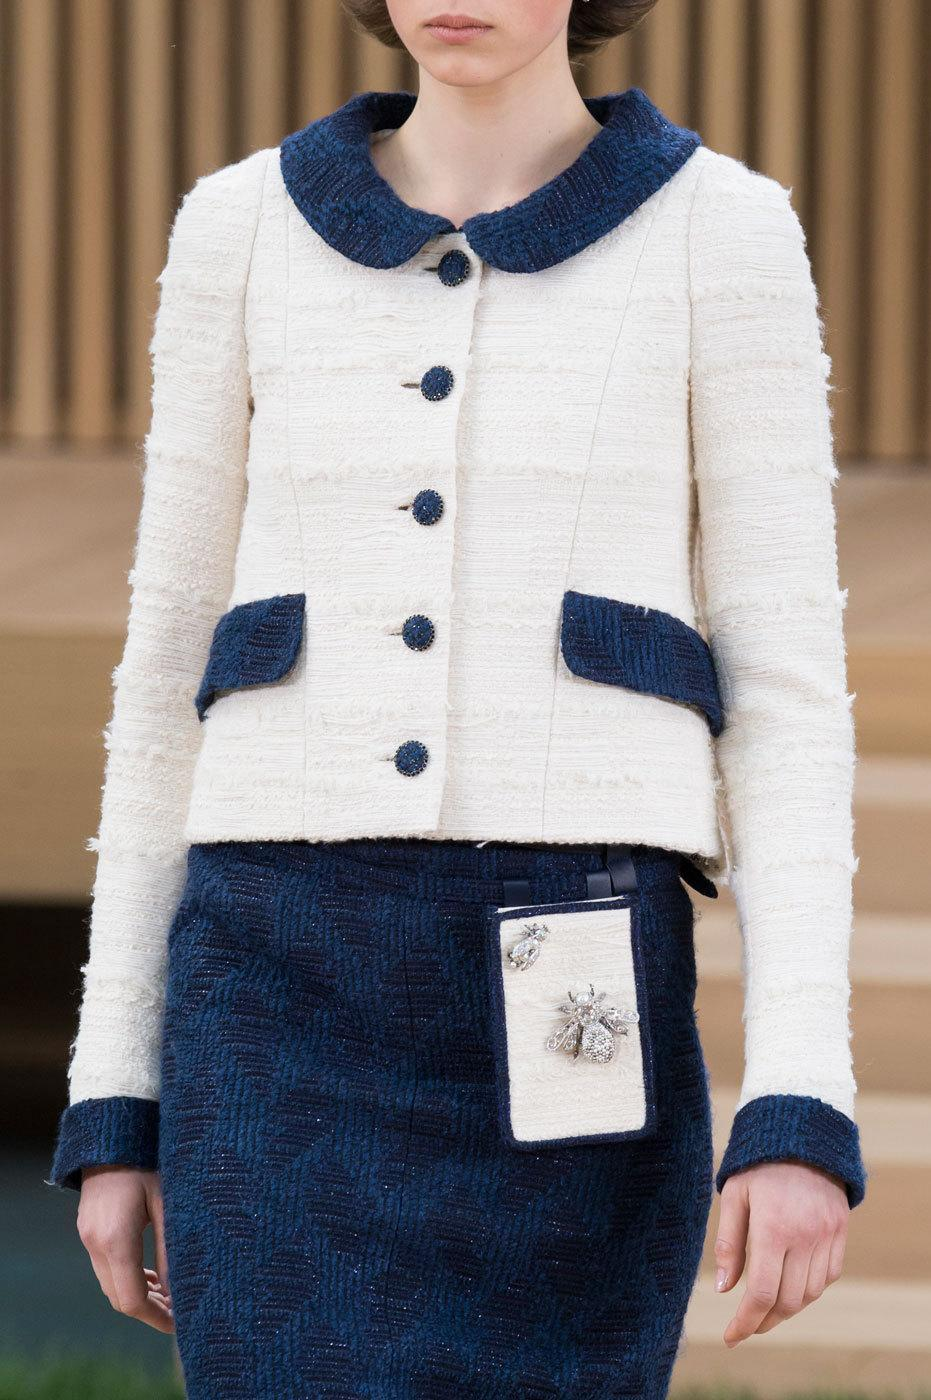 <p>Geek chic at Chanel. The fanny bag goes high tech as a phone holder. <i>Photos: Imaxtree</i></p>